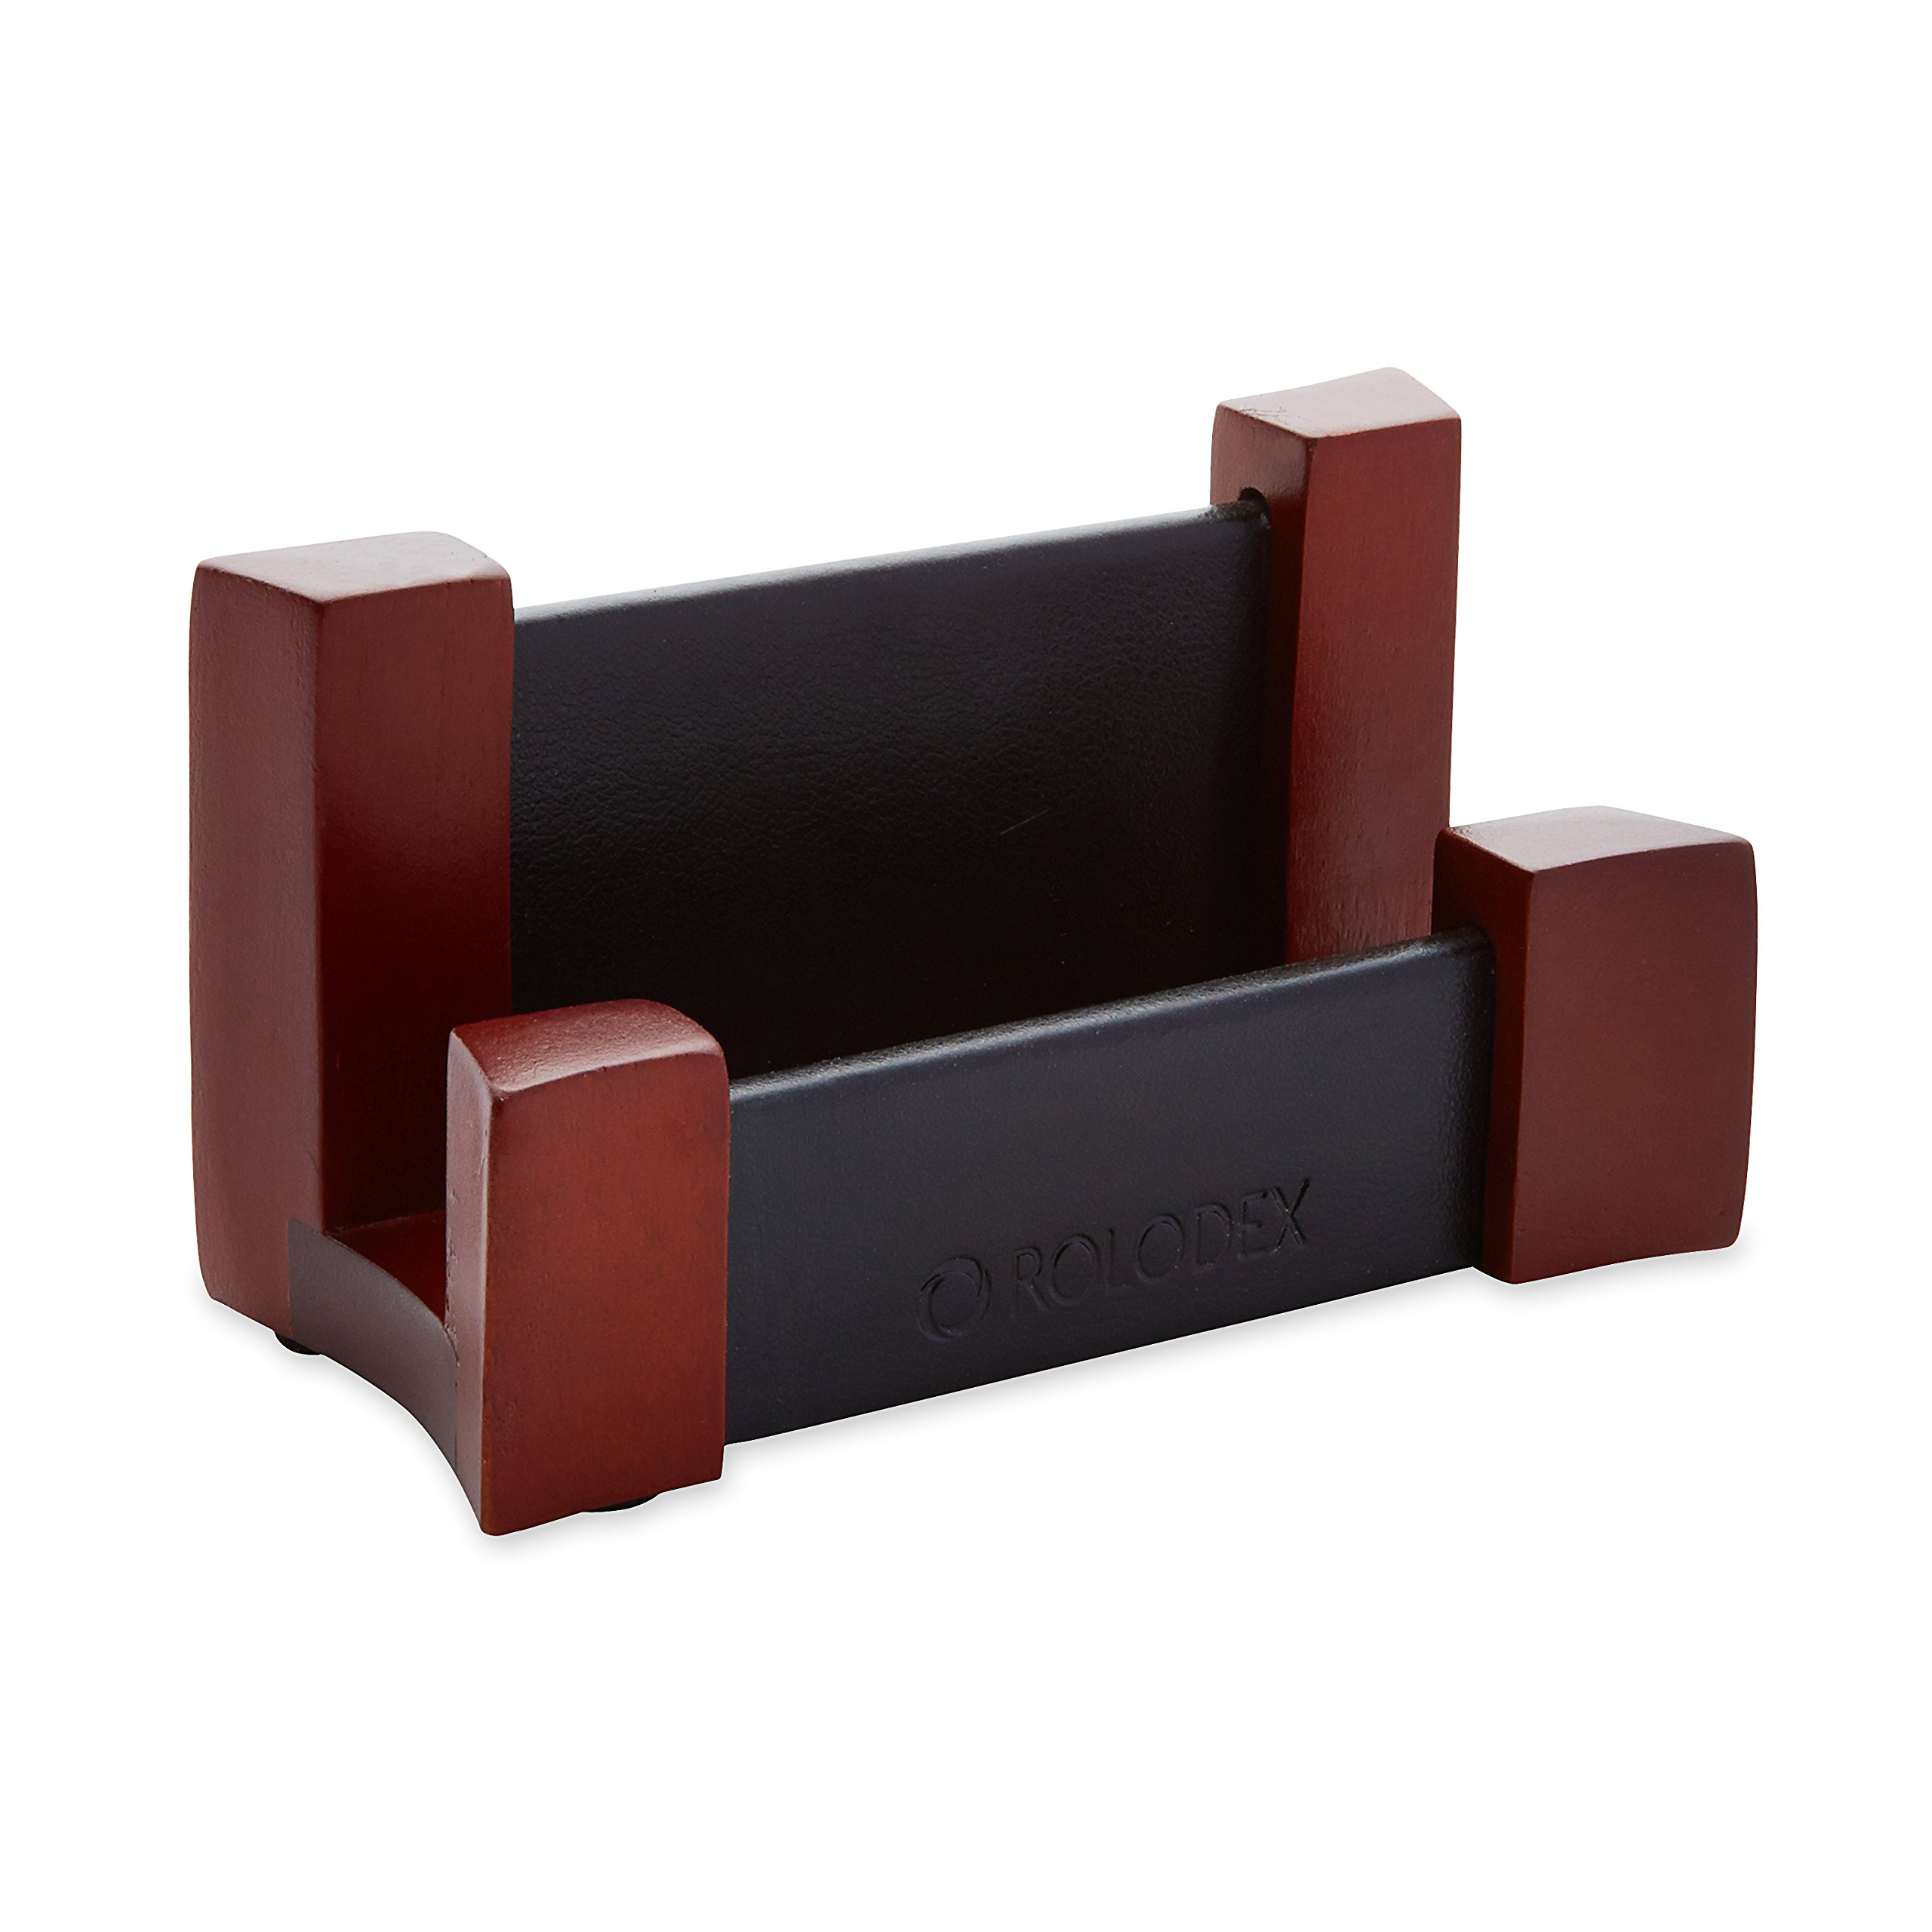 Rolodex Wood and Faux Leather Business Card Holder, Mahogany and Black (81766)